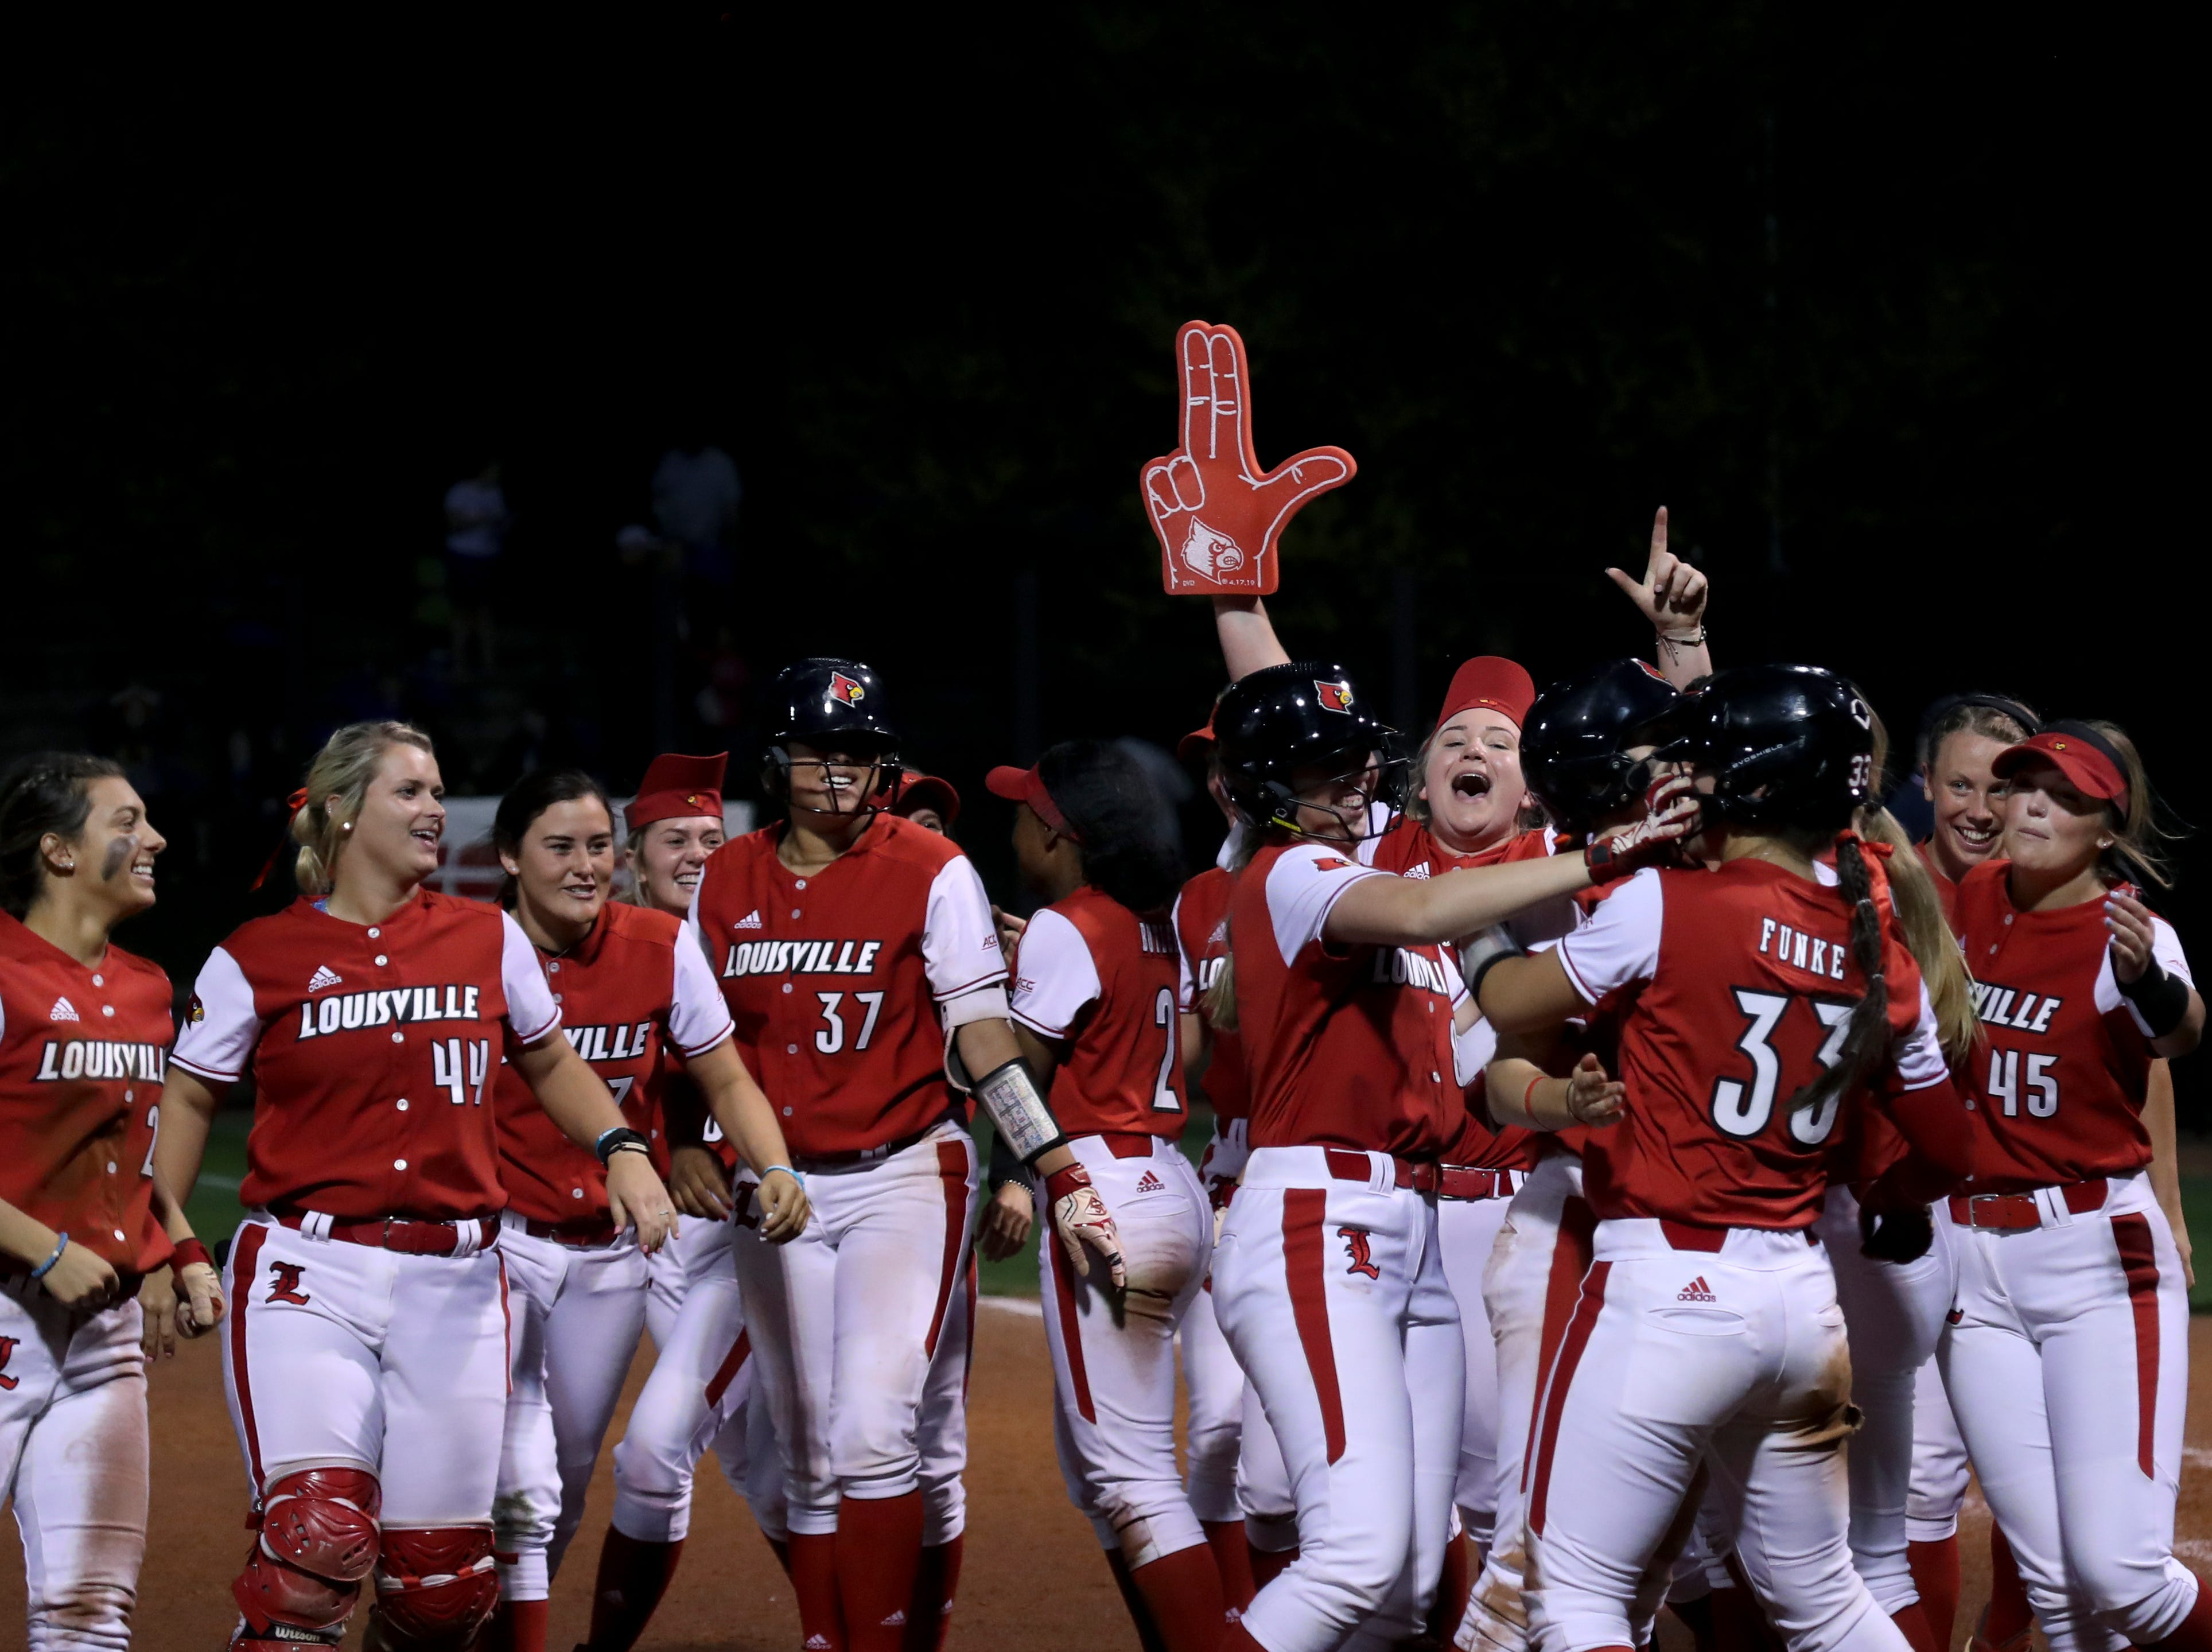 Louisville softball celebrates a victory over Kentucky on April 17.